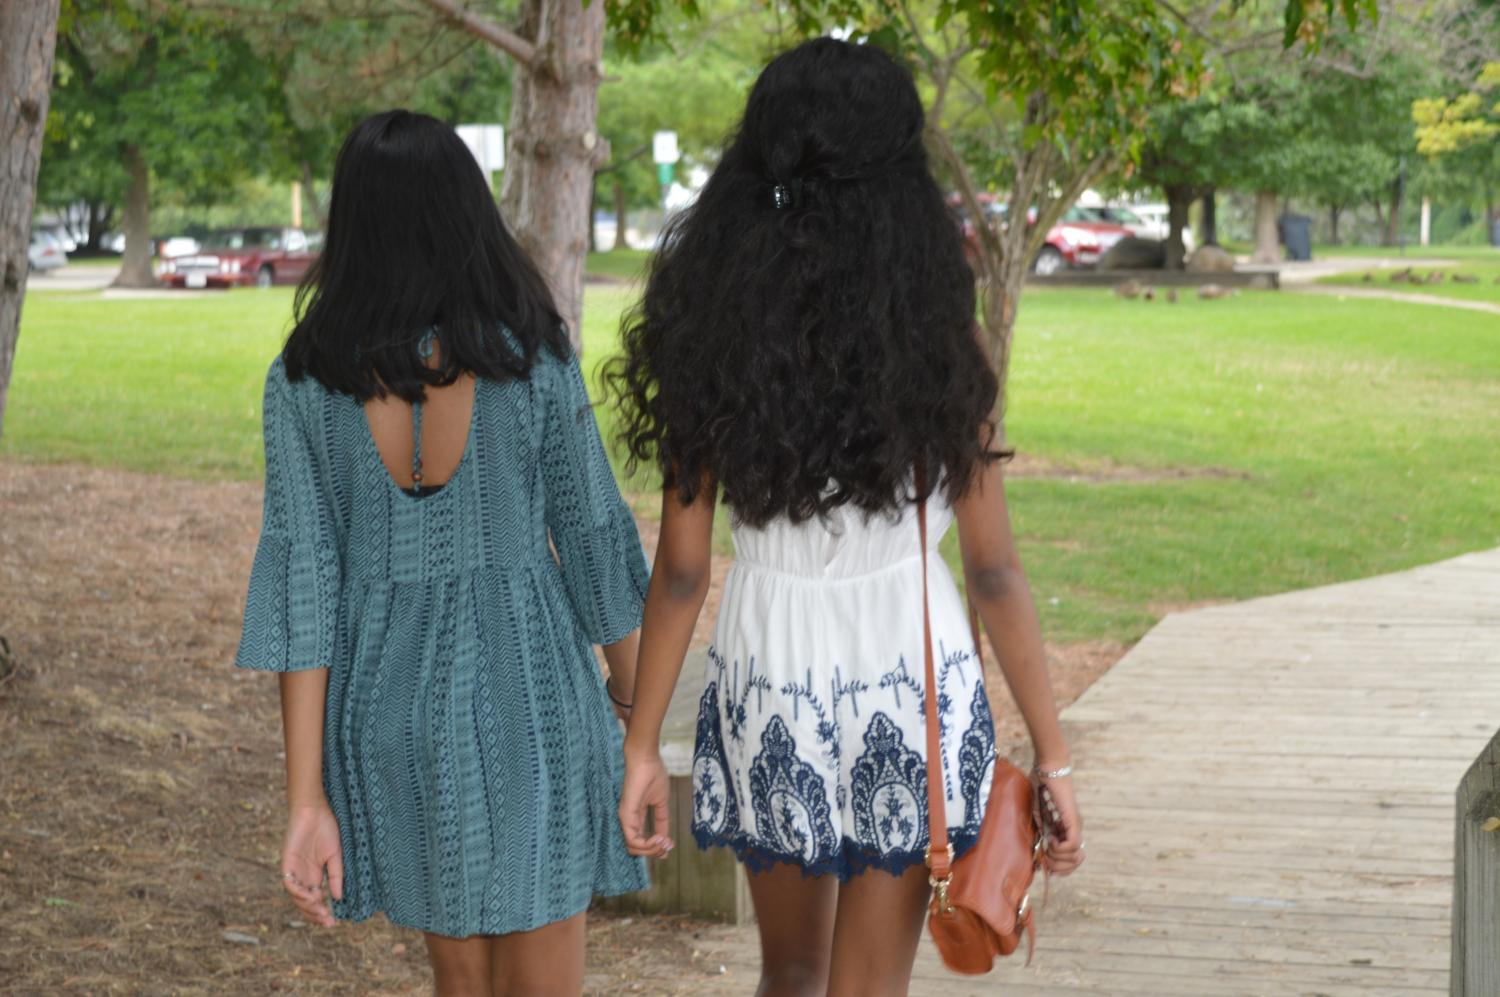 The chronicles of the mane